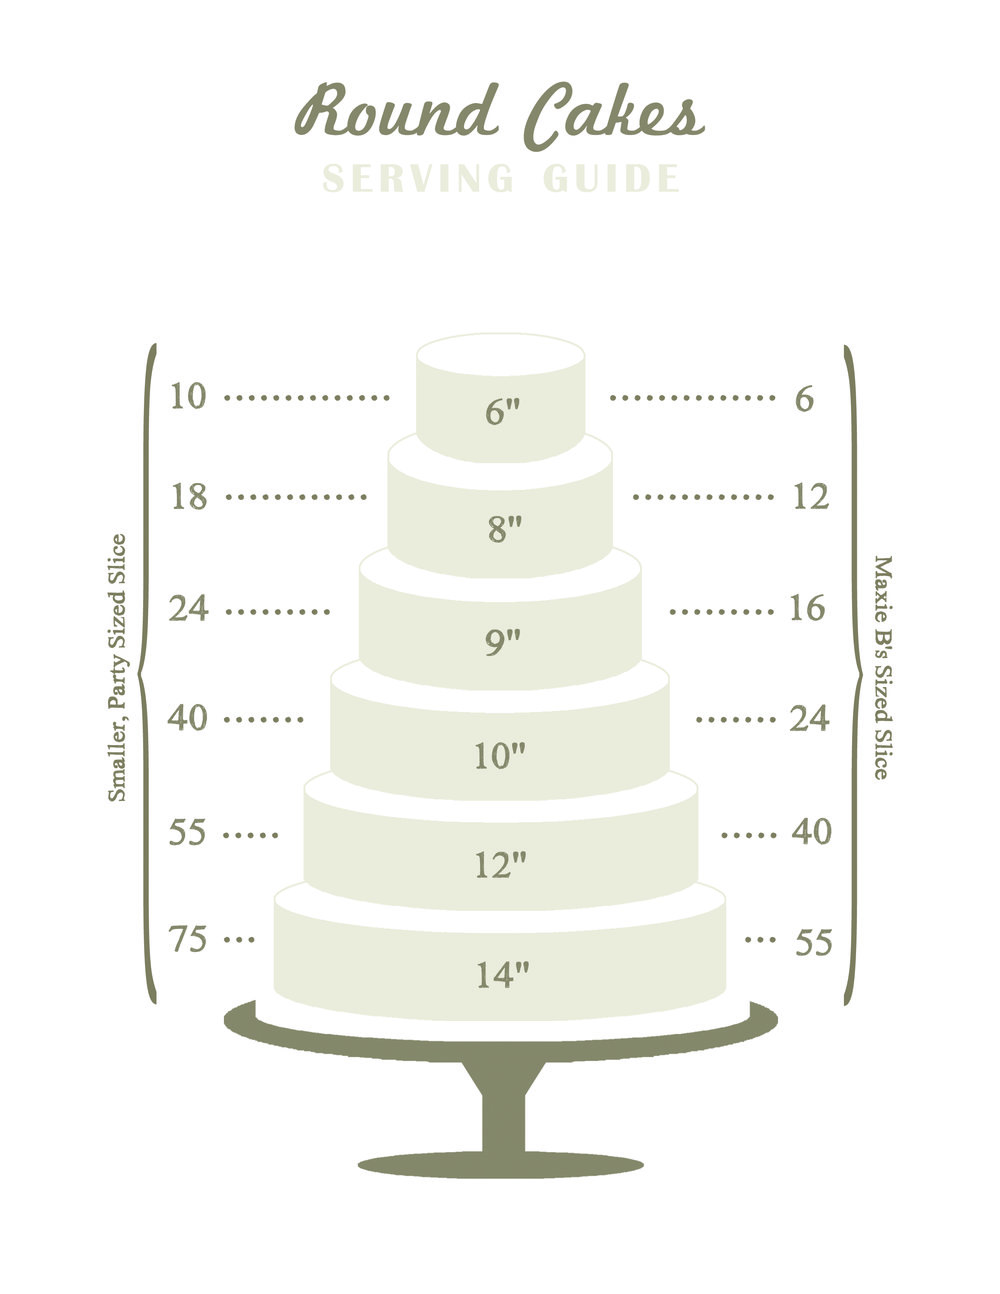 round cakes serving guide 2018.jpg